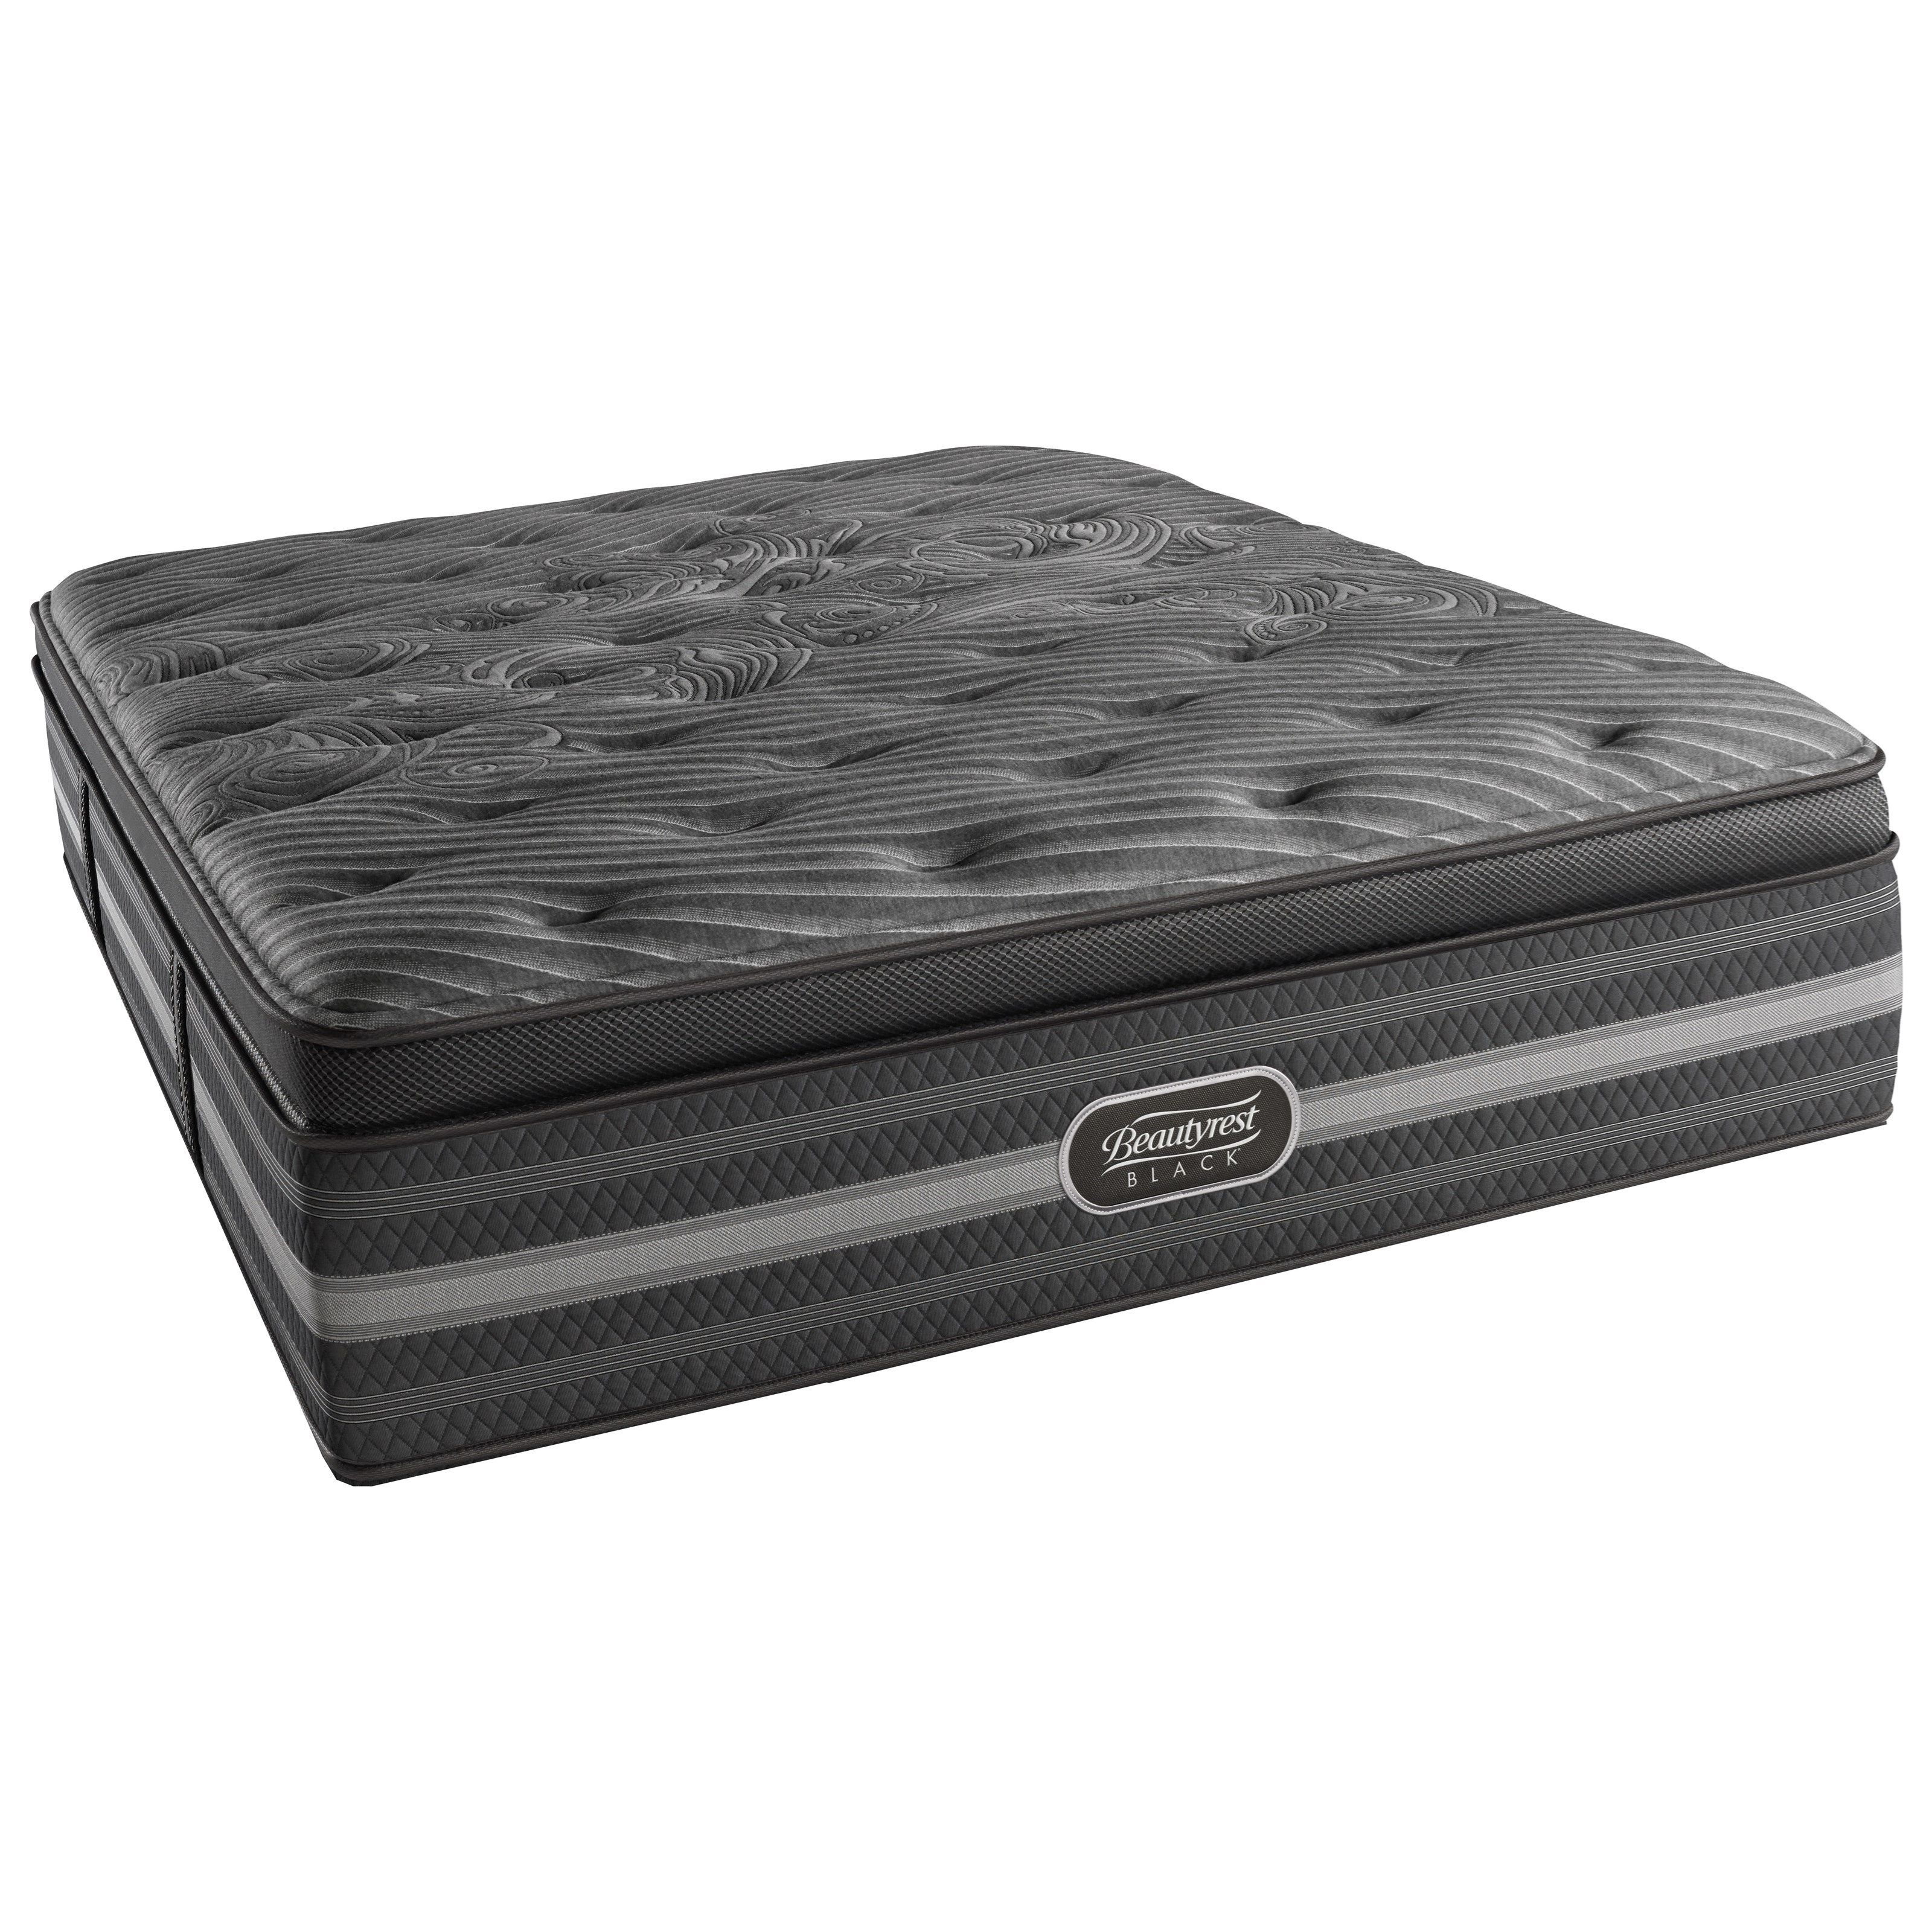 Beautyrest BR Black Natasha King Ultra Plush P.T. Mattress - Item Number: BRBPLPT-K